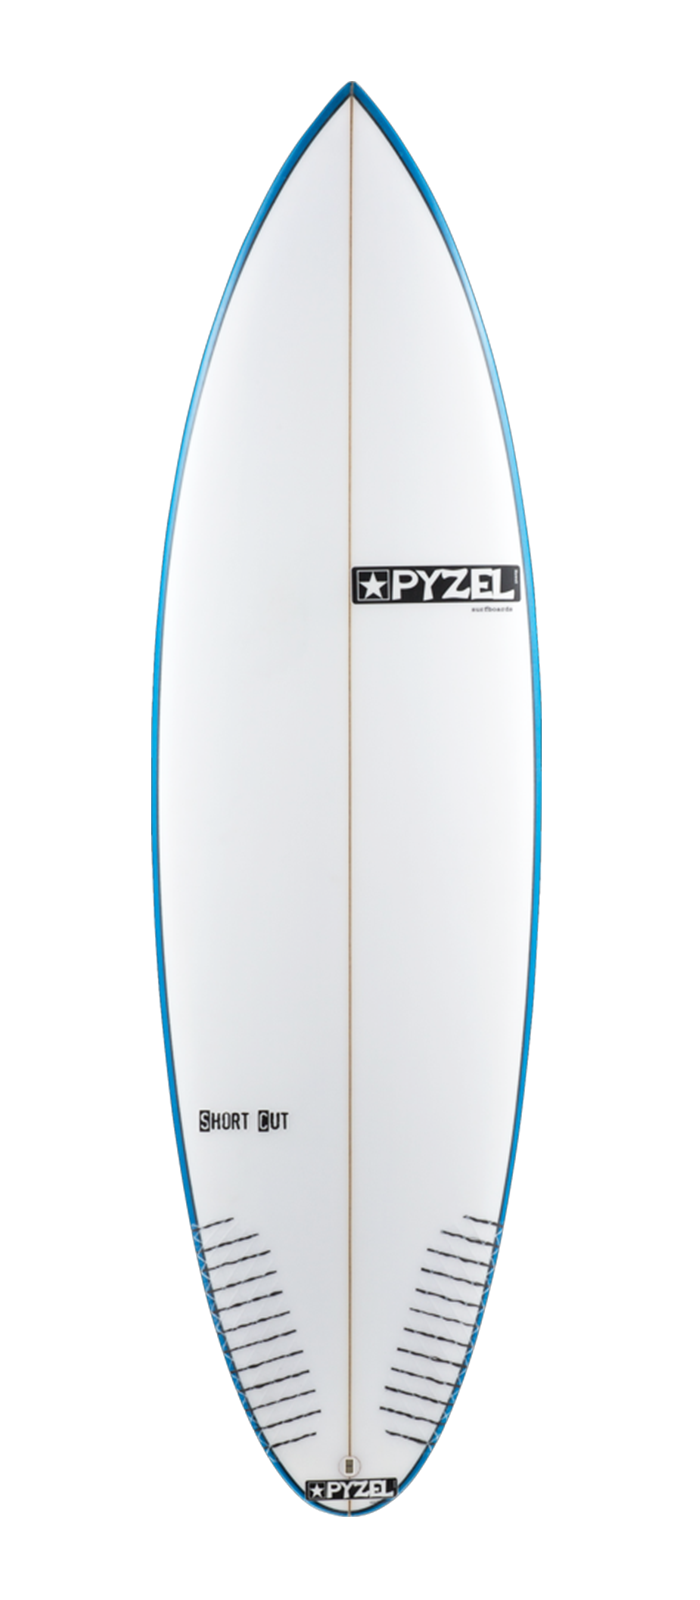 THE SHORTCUT surfboard model